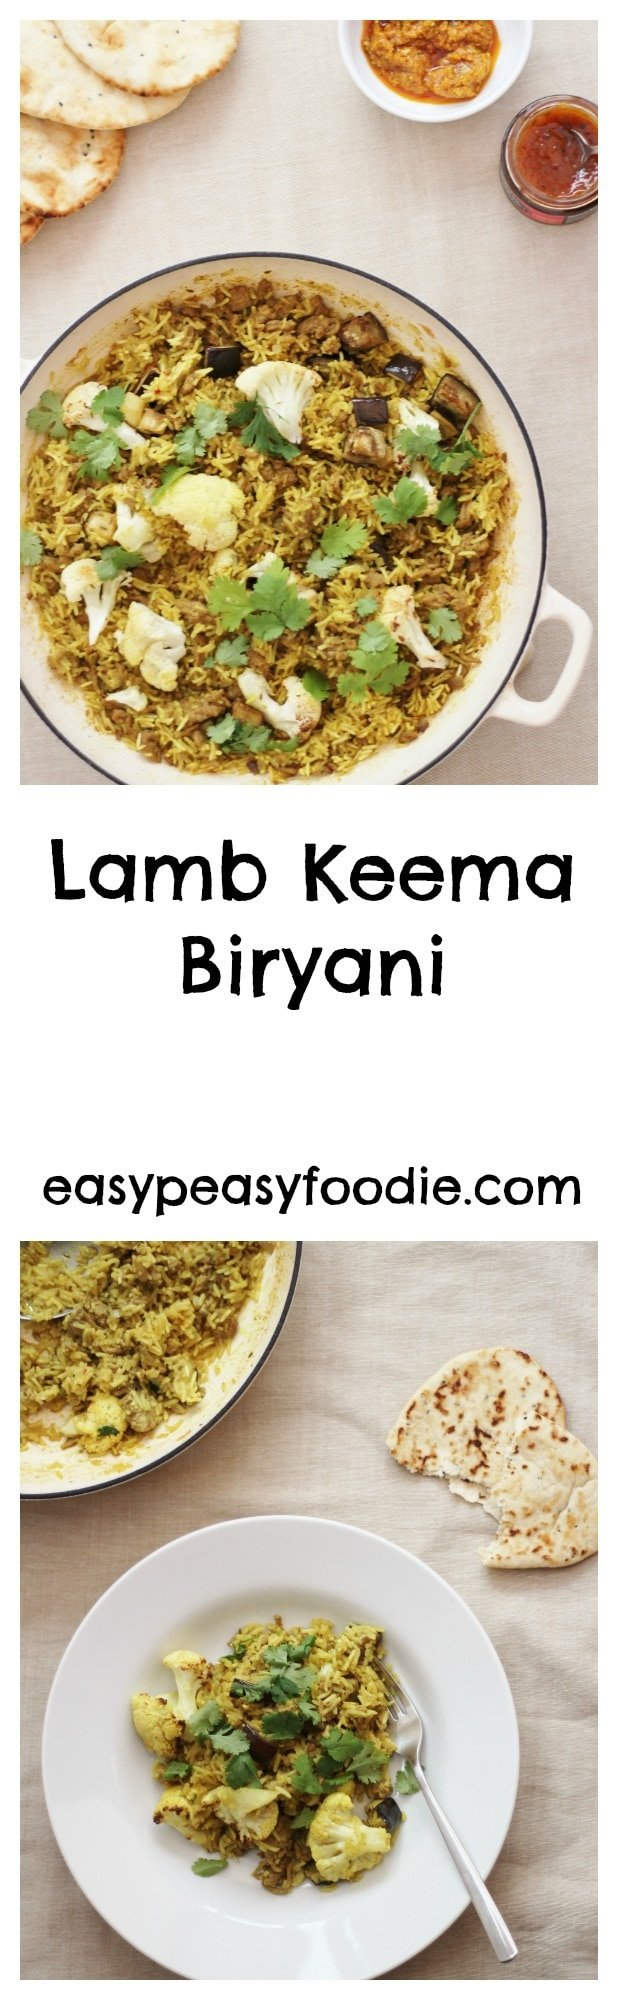 A simple, quick and totally tasty lamb recipe, this Lamb Keema Biryani is a perfect midweek meal for when time is tight, but delicious enough for the weekend too. #lamb #lambkeema #lambbiryani #biryani #lambcurry #easydinners #midweekmeals #easyrecipes #familydinners #easypeasyfoodie #cookblogshare